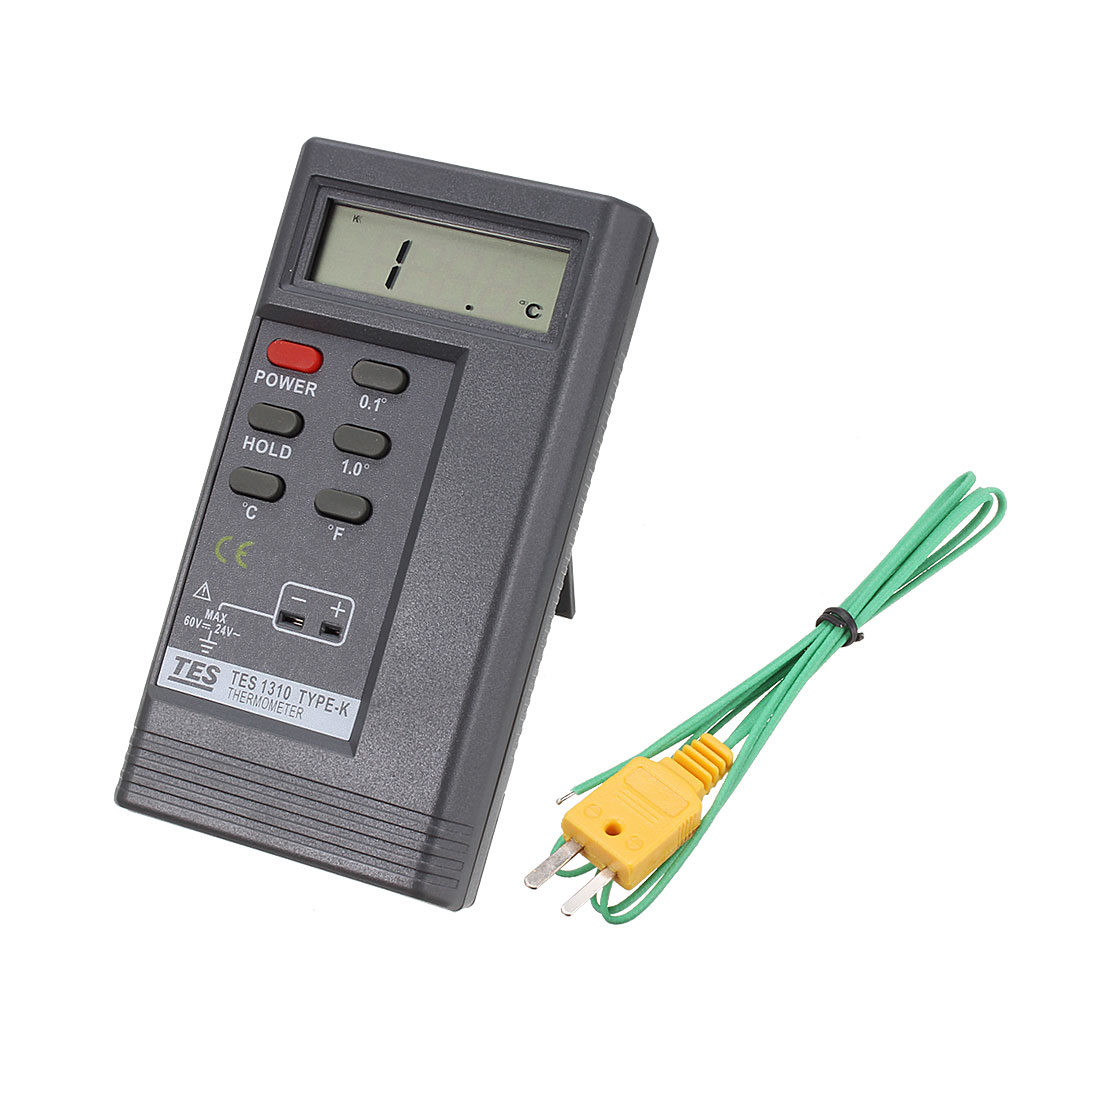 TES-1310 Digital Thermometer Temperature Reader Sensor -50 to + 1300 Celsius